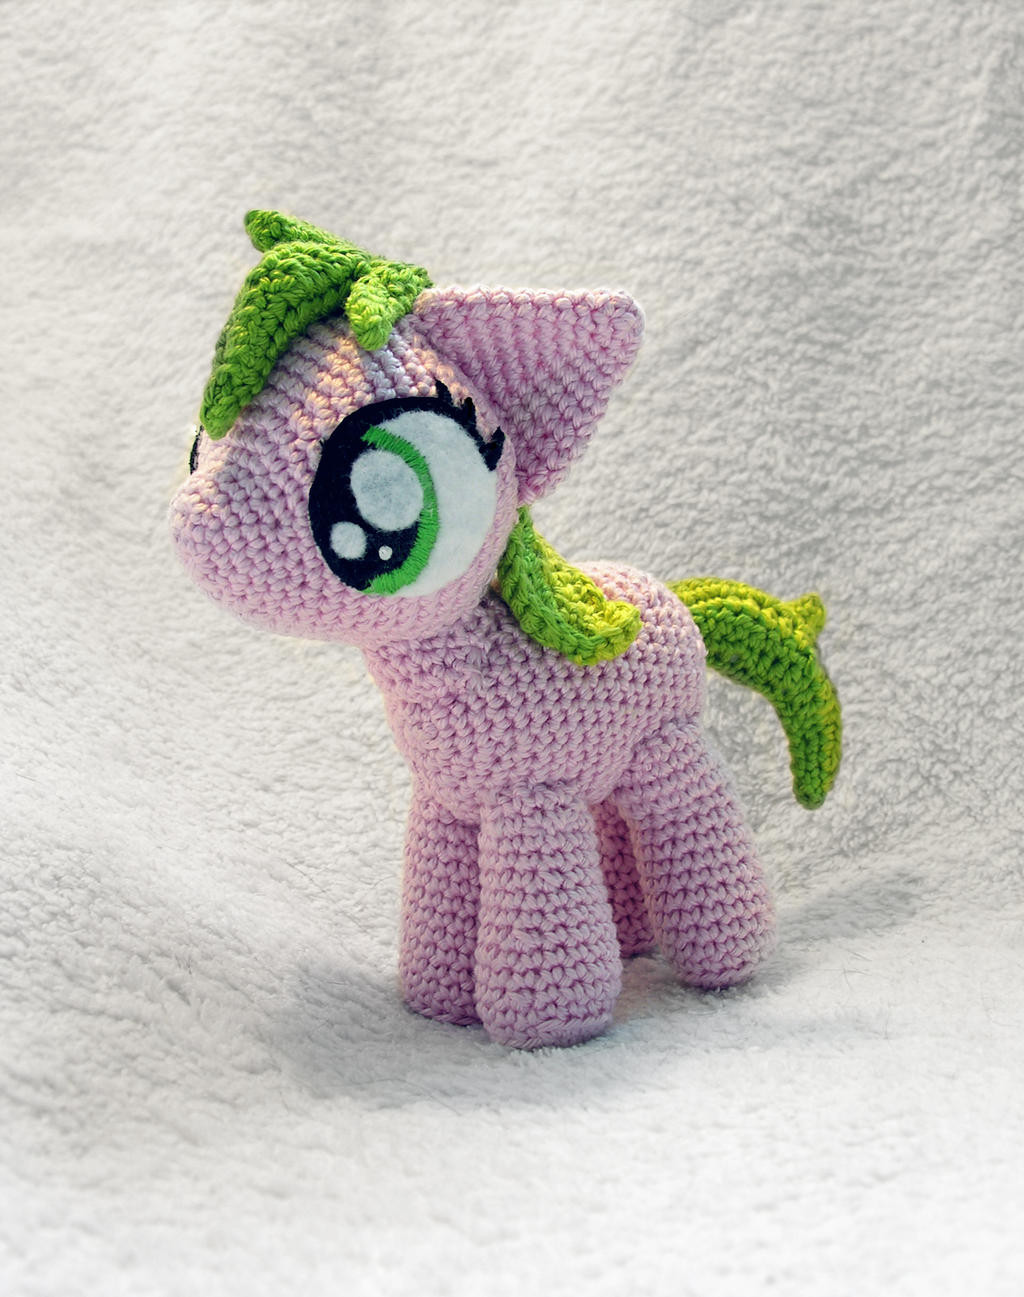 Sweet Tooth - Filly - Amigurumi by LeFay00 on DeviantArt